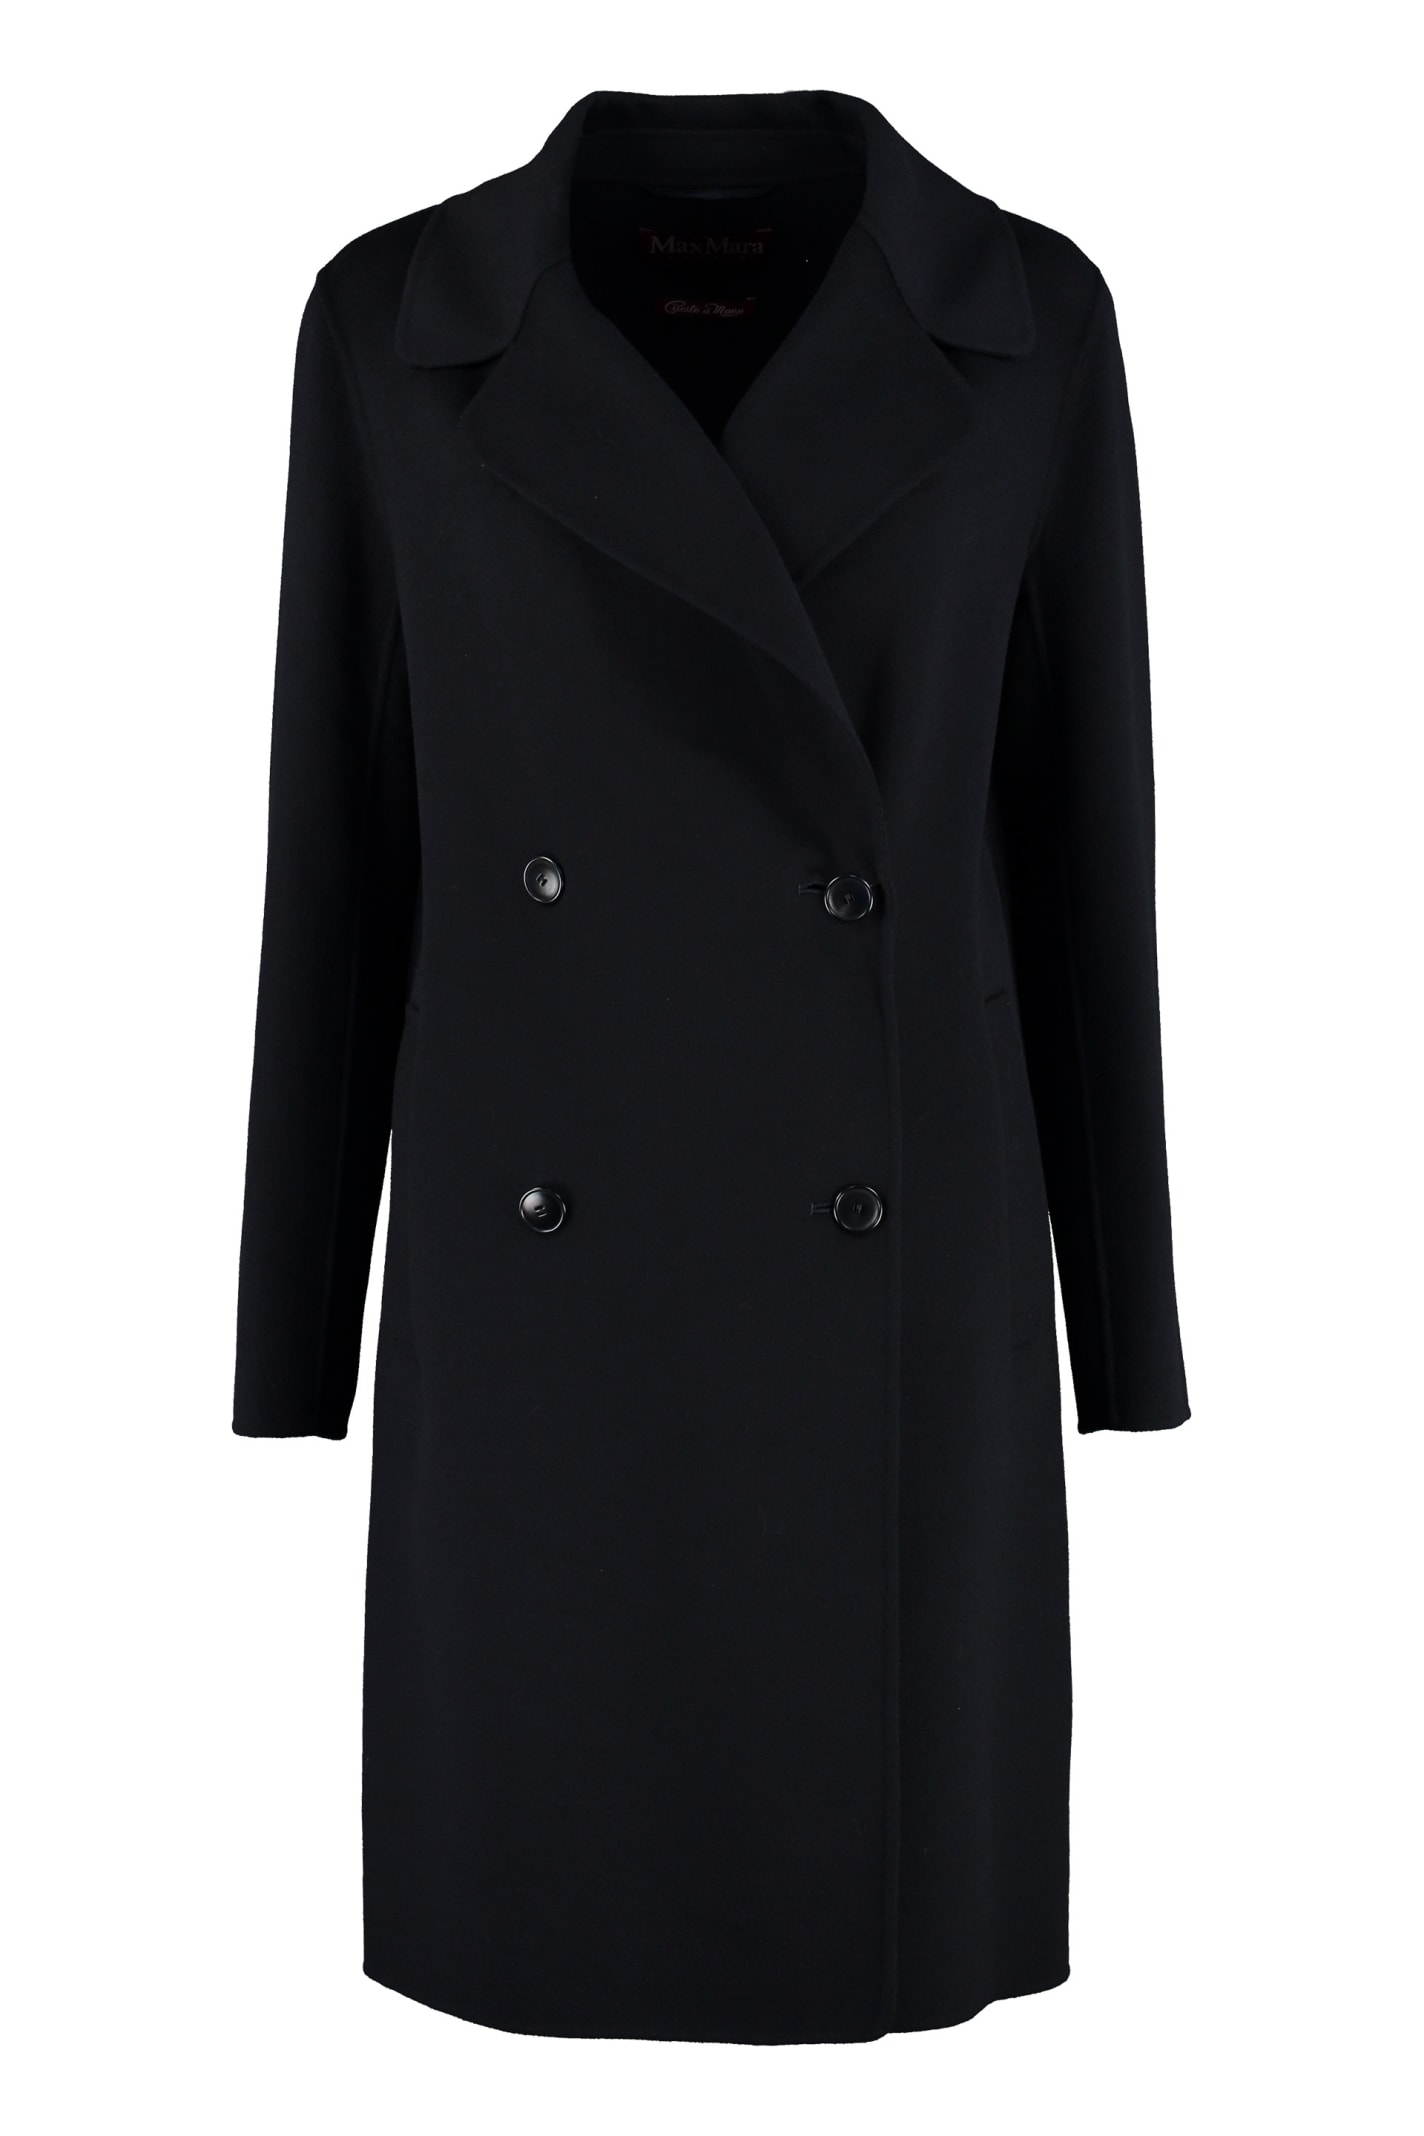 Max Mara Studio Verbano Double-breasted Coat